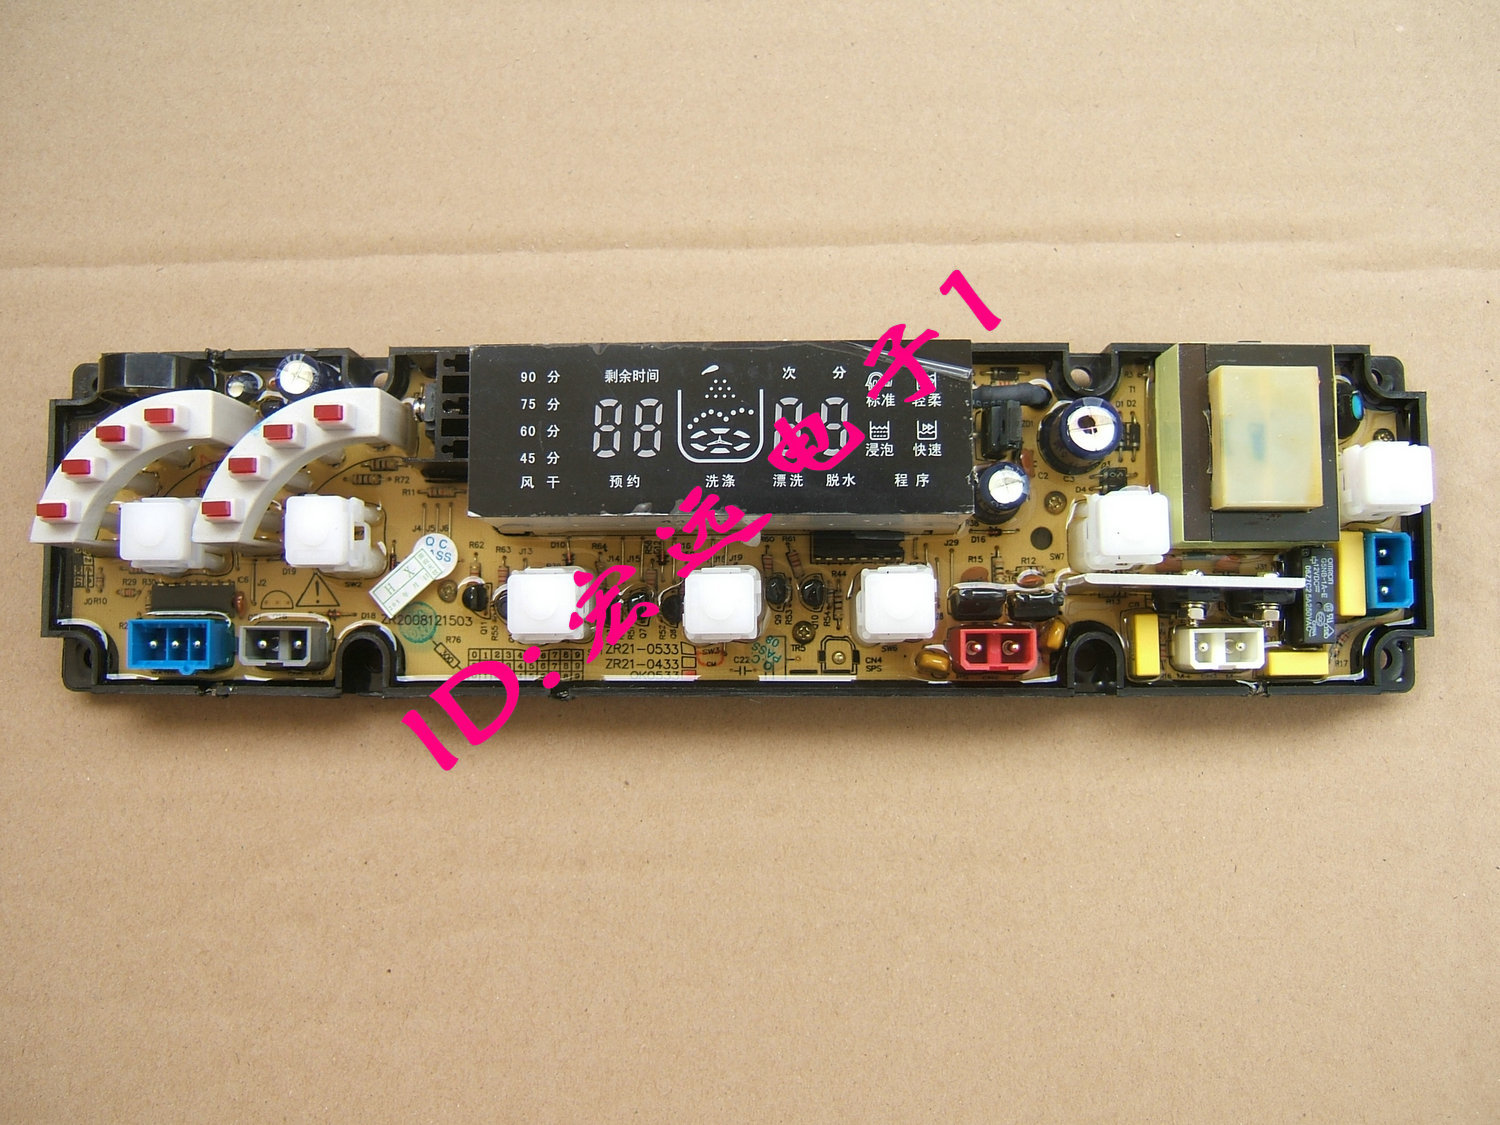 Washing machine board xqb70-912 original motherboard ok0533 zr21-0533 free shipping 100% tested for midea for rongshida washing machine circuit board xqb70 973 xqb70 9909g motherboard set on sale